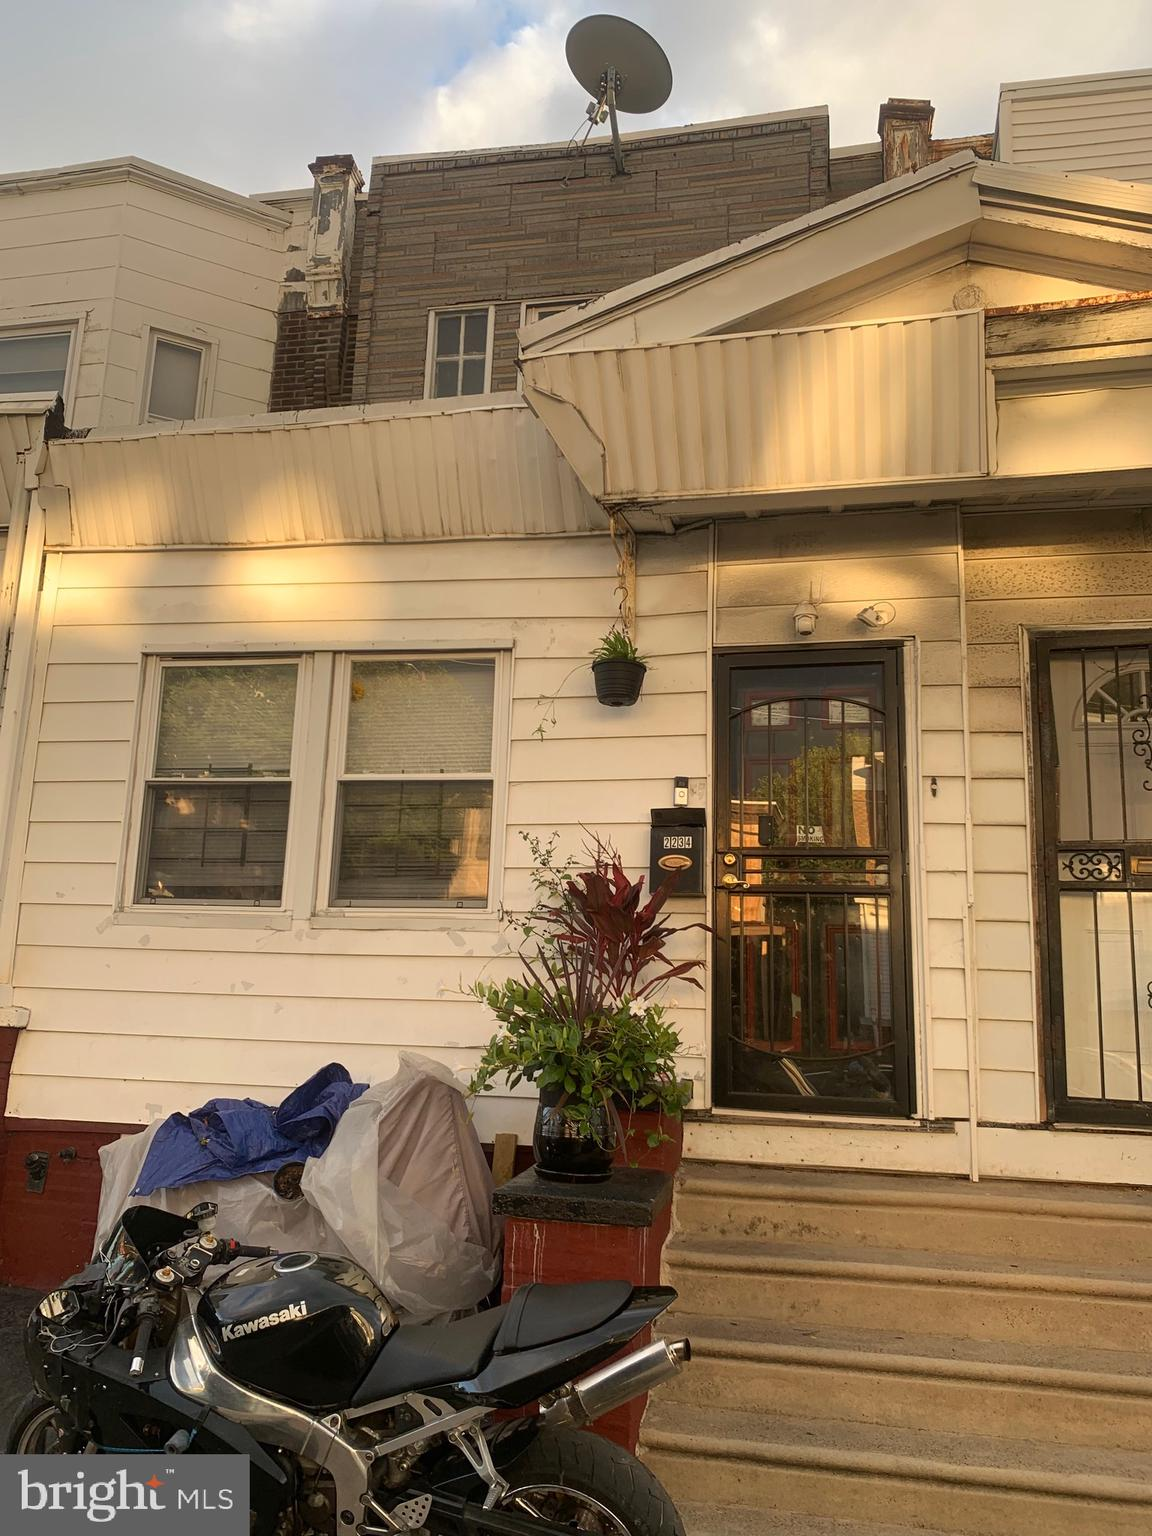 3-Bedroom Townhouse In Paschall